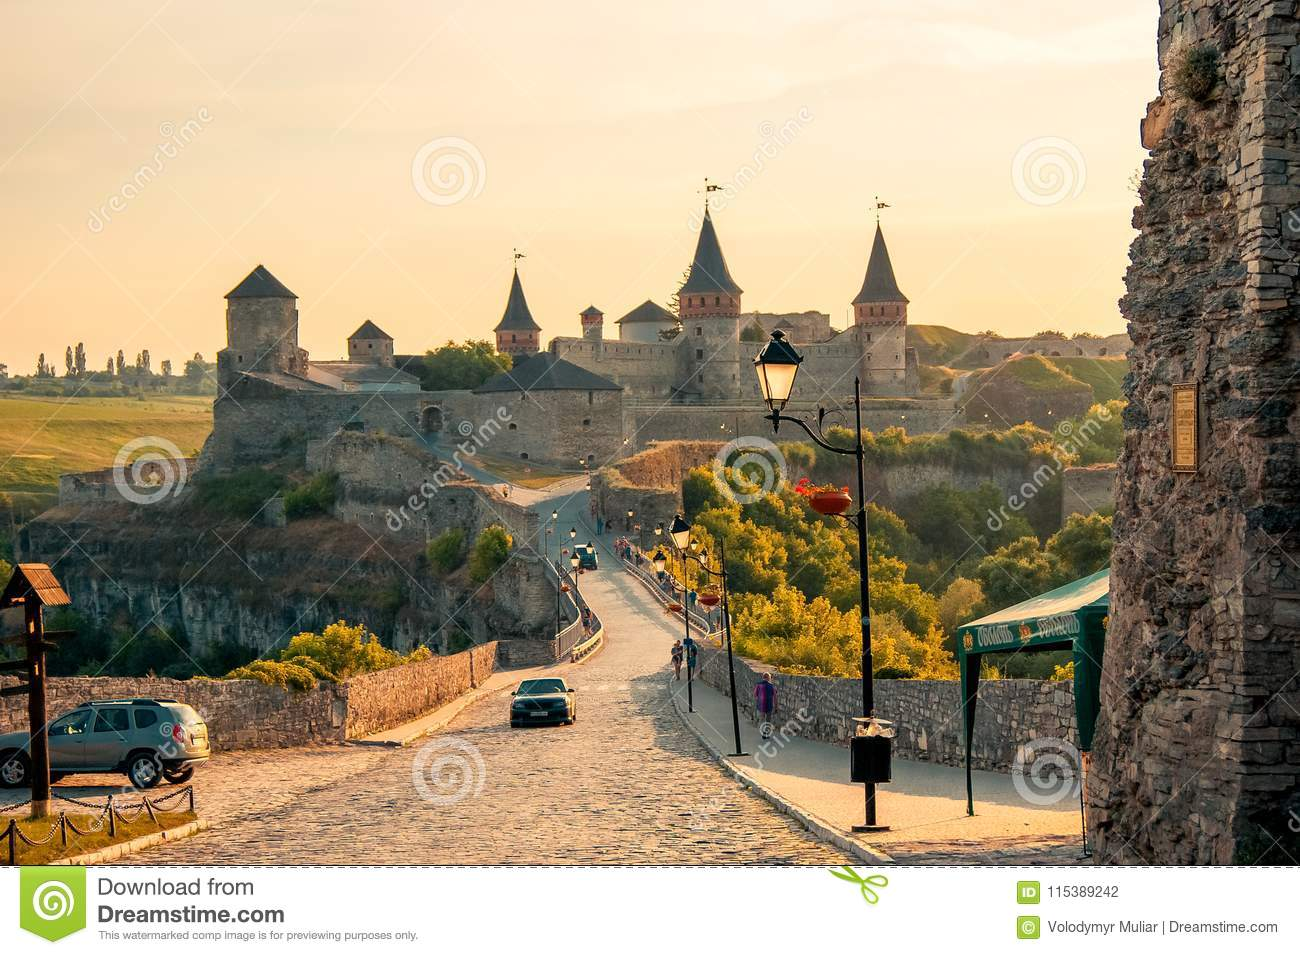 Kamyanets-Podilsky Ukraine. Summer 2015 View of the fortress in